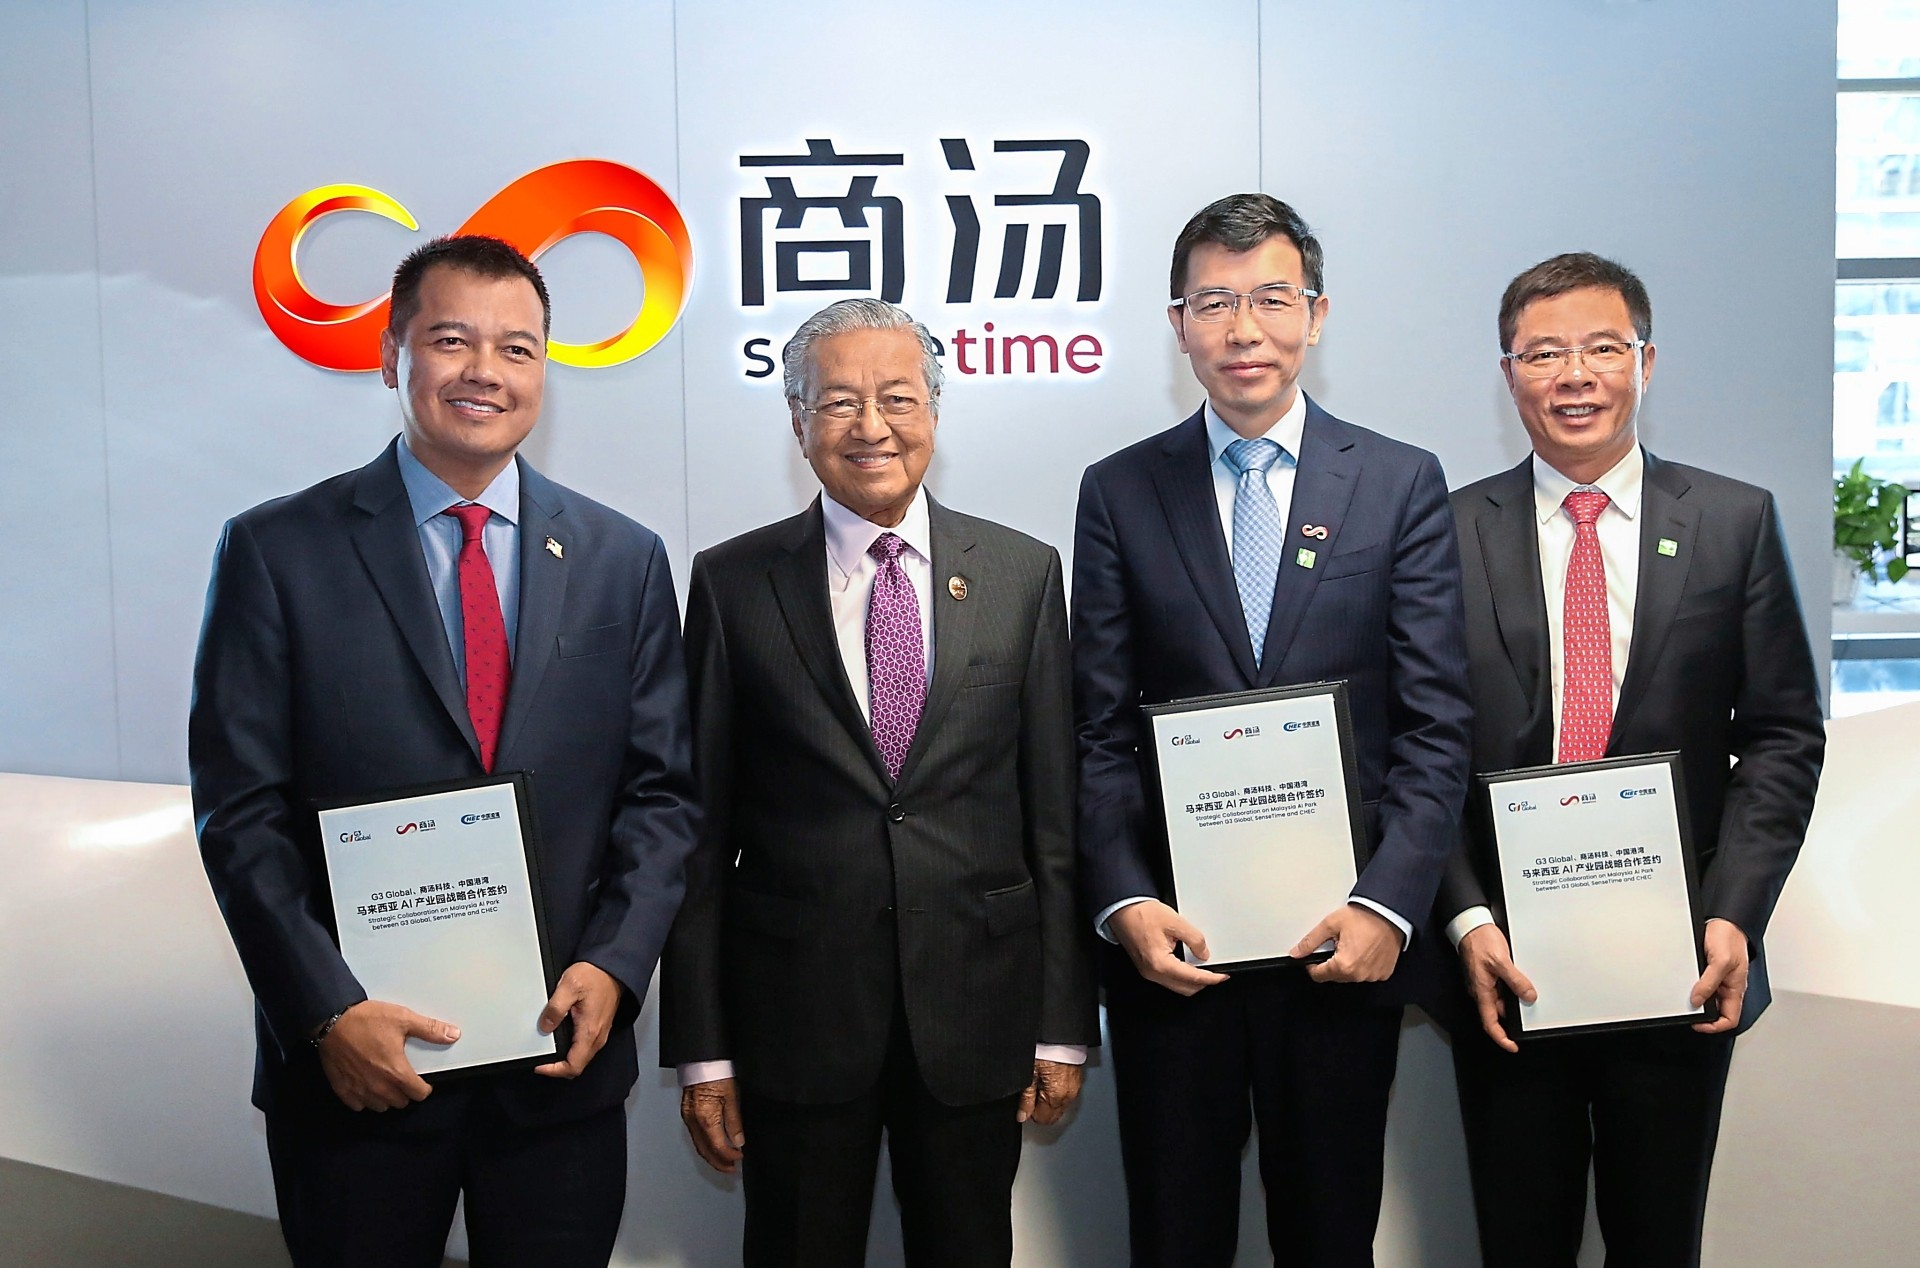 (From left) G3 Global Bhd executive chairman Datuk Wan Khalik Wan Muhammad, Prime Minister Tun Dr Mahathir Mohamad, SenseTime Group Ltd founder Prof. Tang Xiao'ou and China Harbour Engineering Company Ltd chairman Lin Yi Chong after the signing ceremony of the Memorandum of Understanding (MoU) for the setting up of an AI park in Malaysia at SenseTime's office in Beijing in April 2019. - Filepic